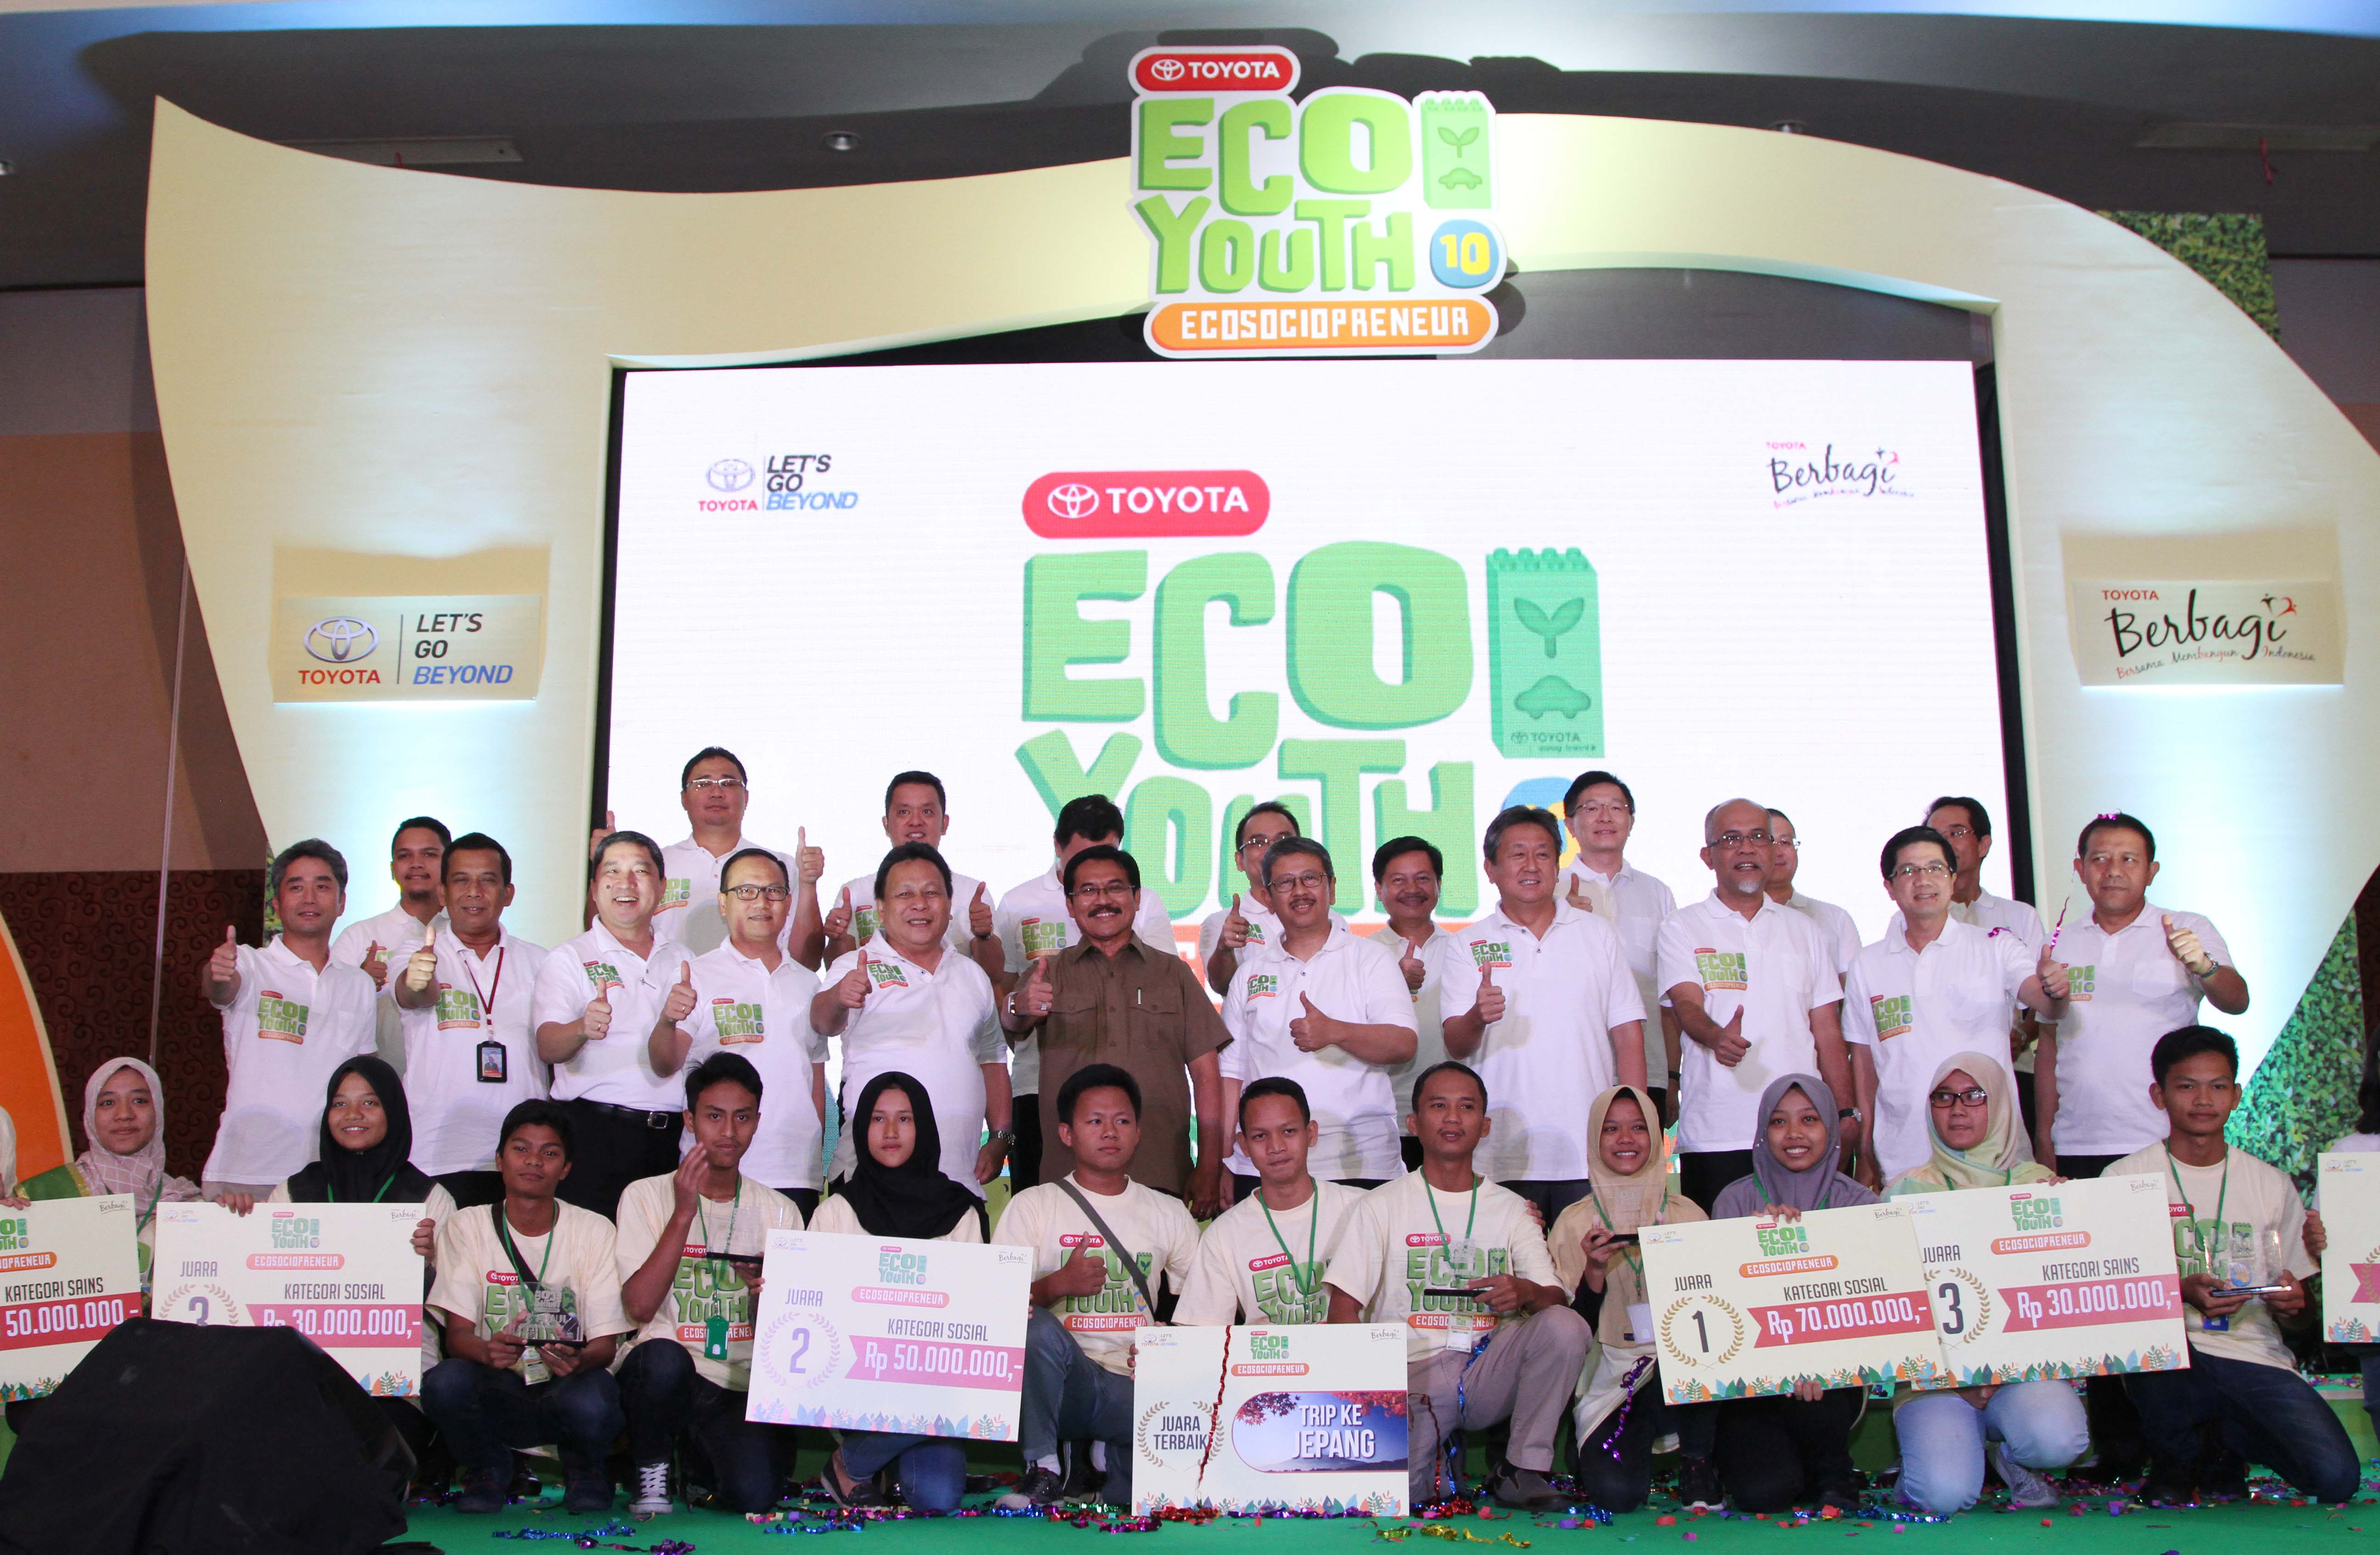 ENVIRONMENTAL COMPETITION IN THE 10th TOYOTA ECO YOUTH